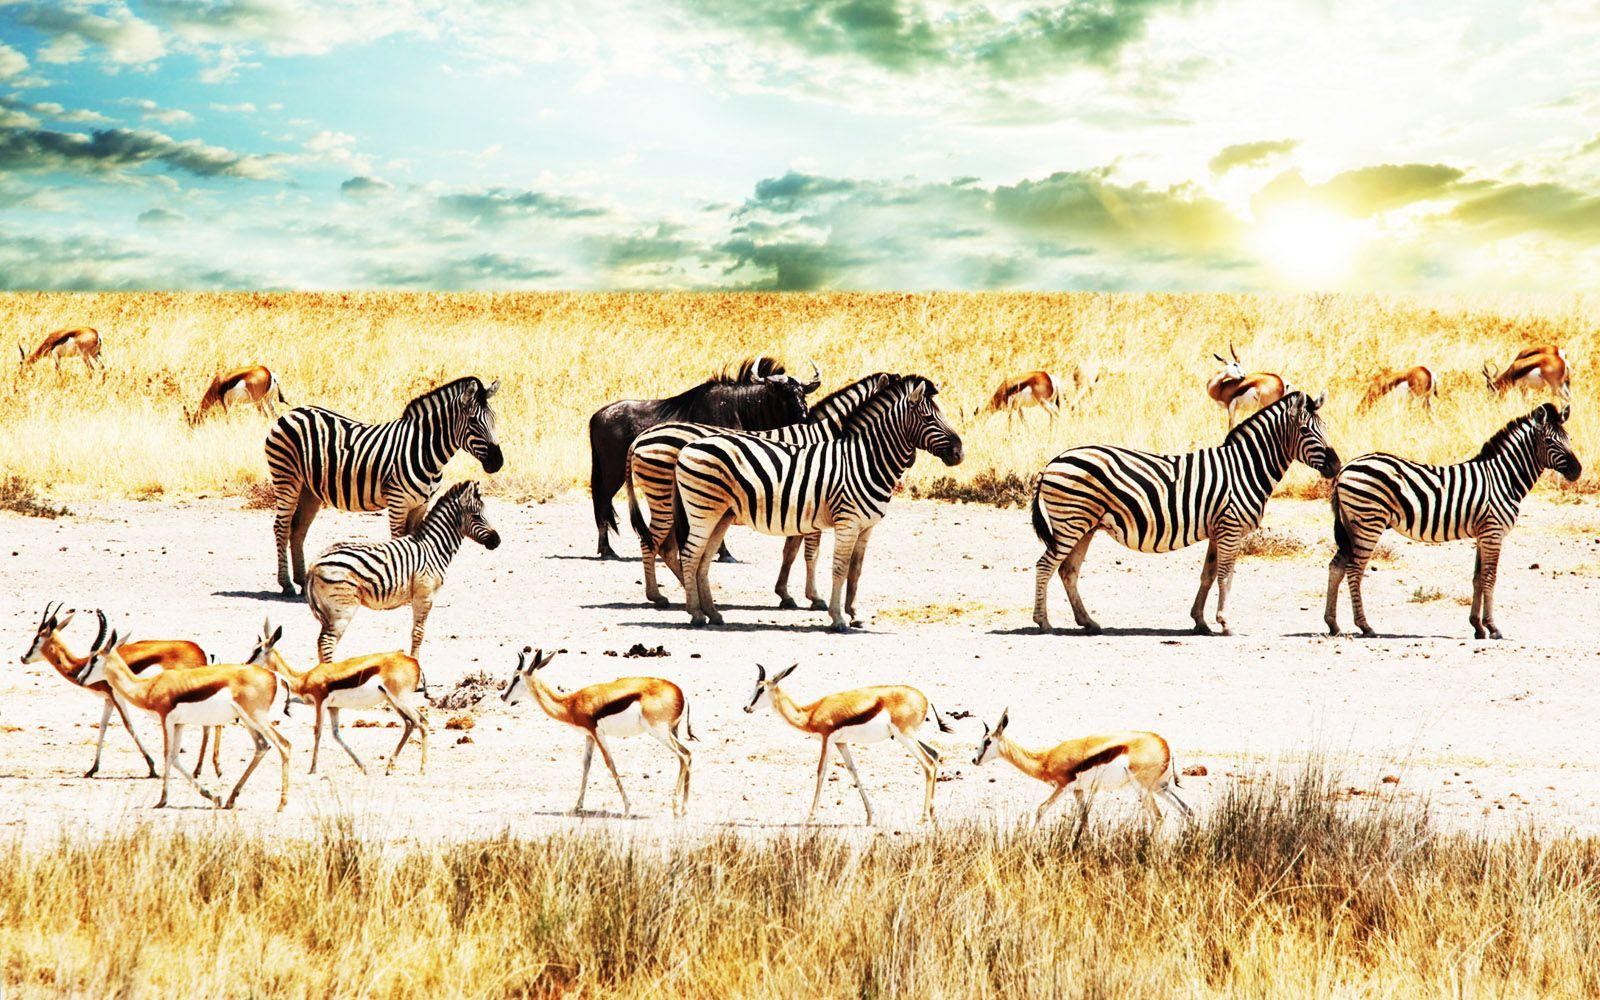 Central Wallpaper: Colors of Nature Zebras HD Wallpapers